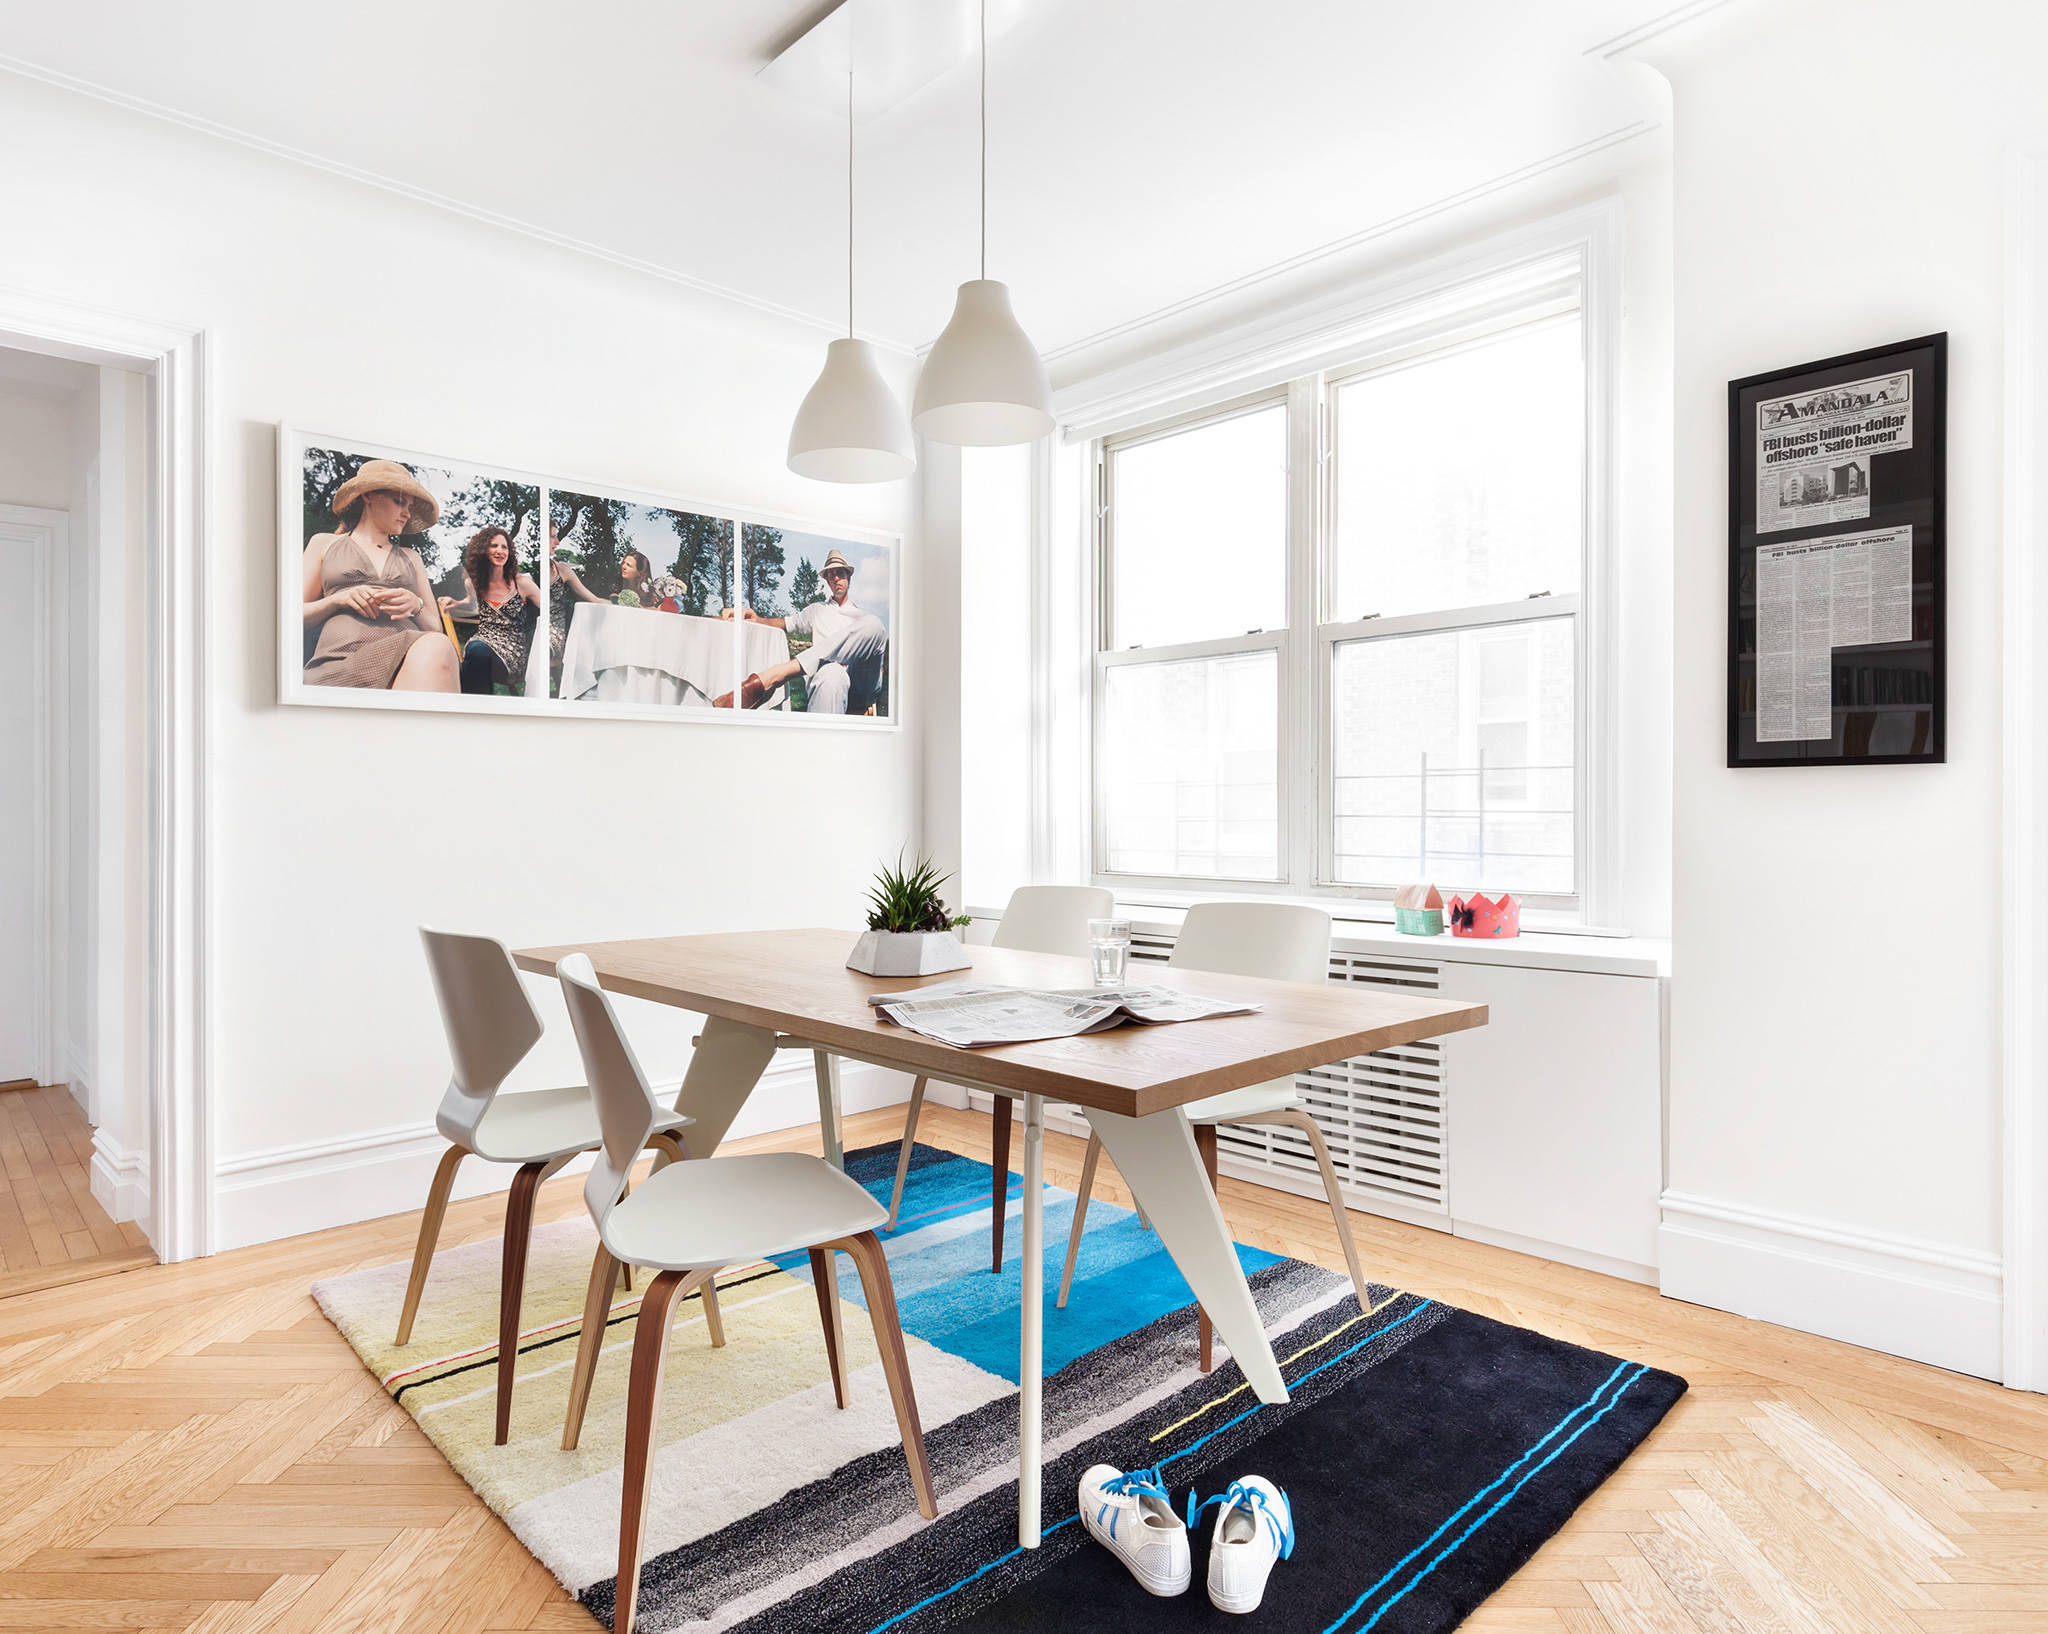 Add color to the small dining room in white with rug and wall art